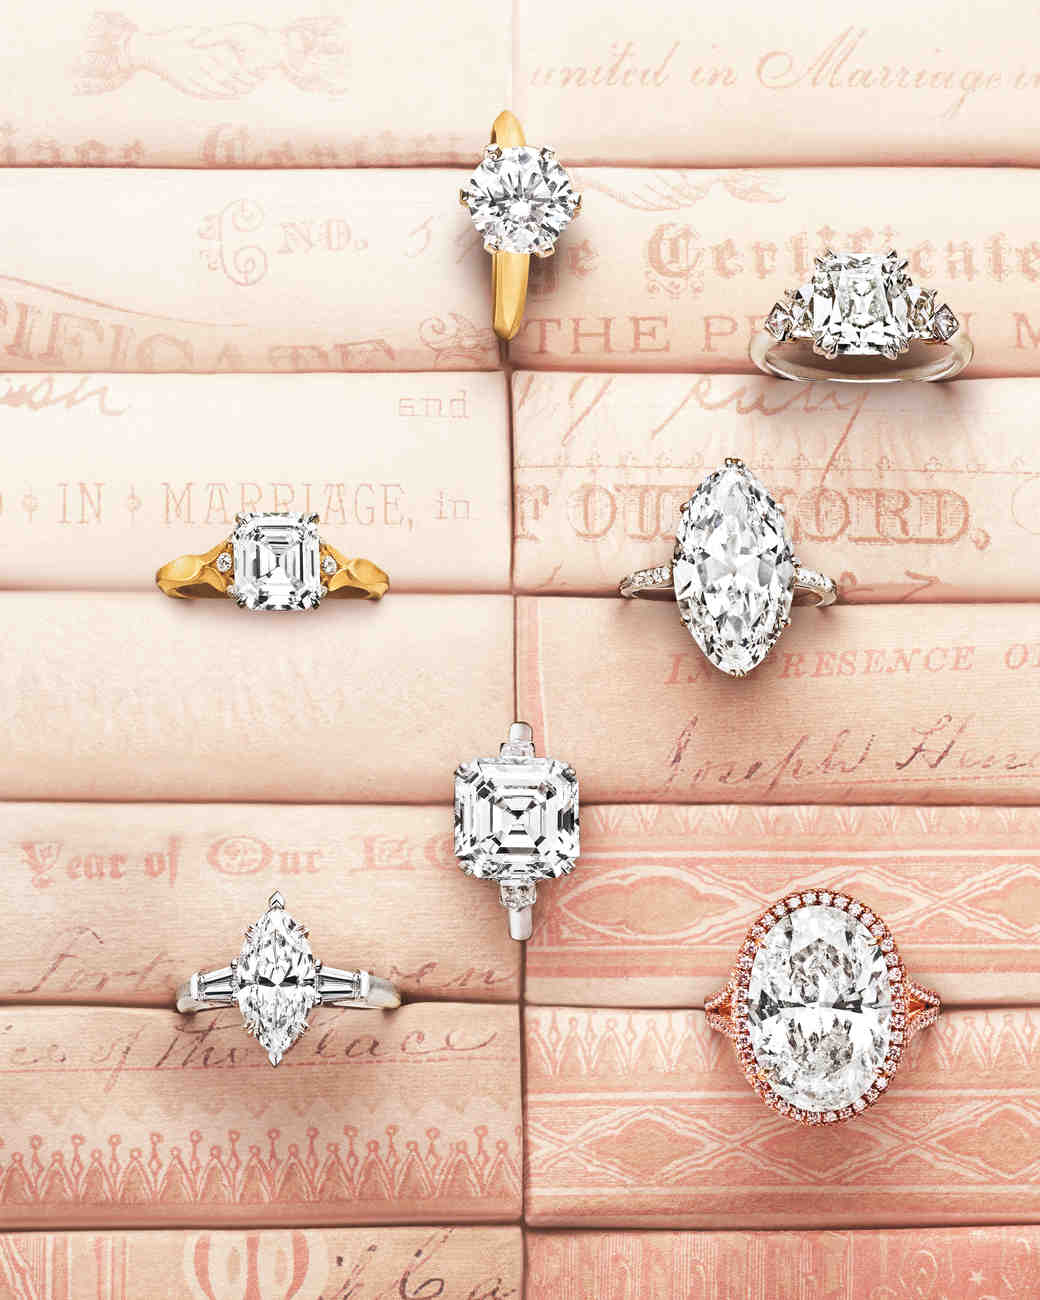 engagementrings-123f-comp-md112055-msw-otw.jpg